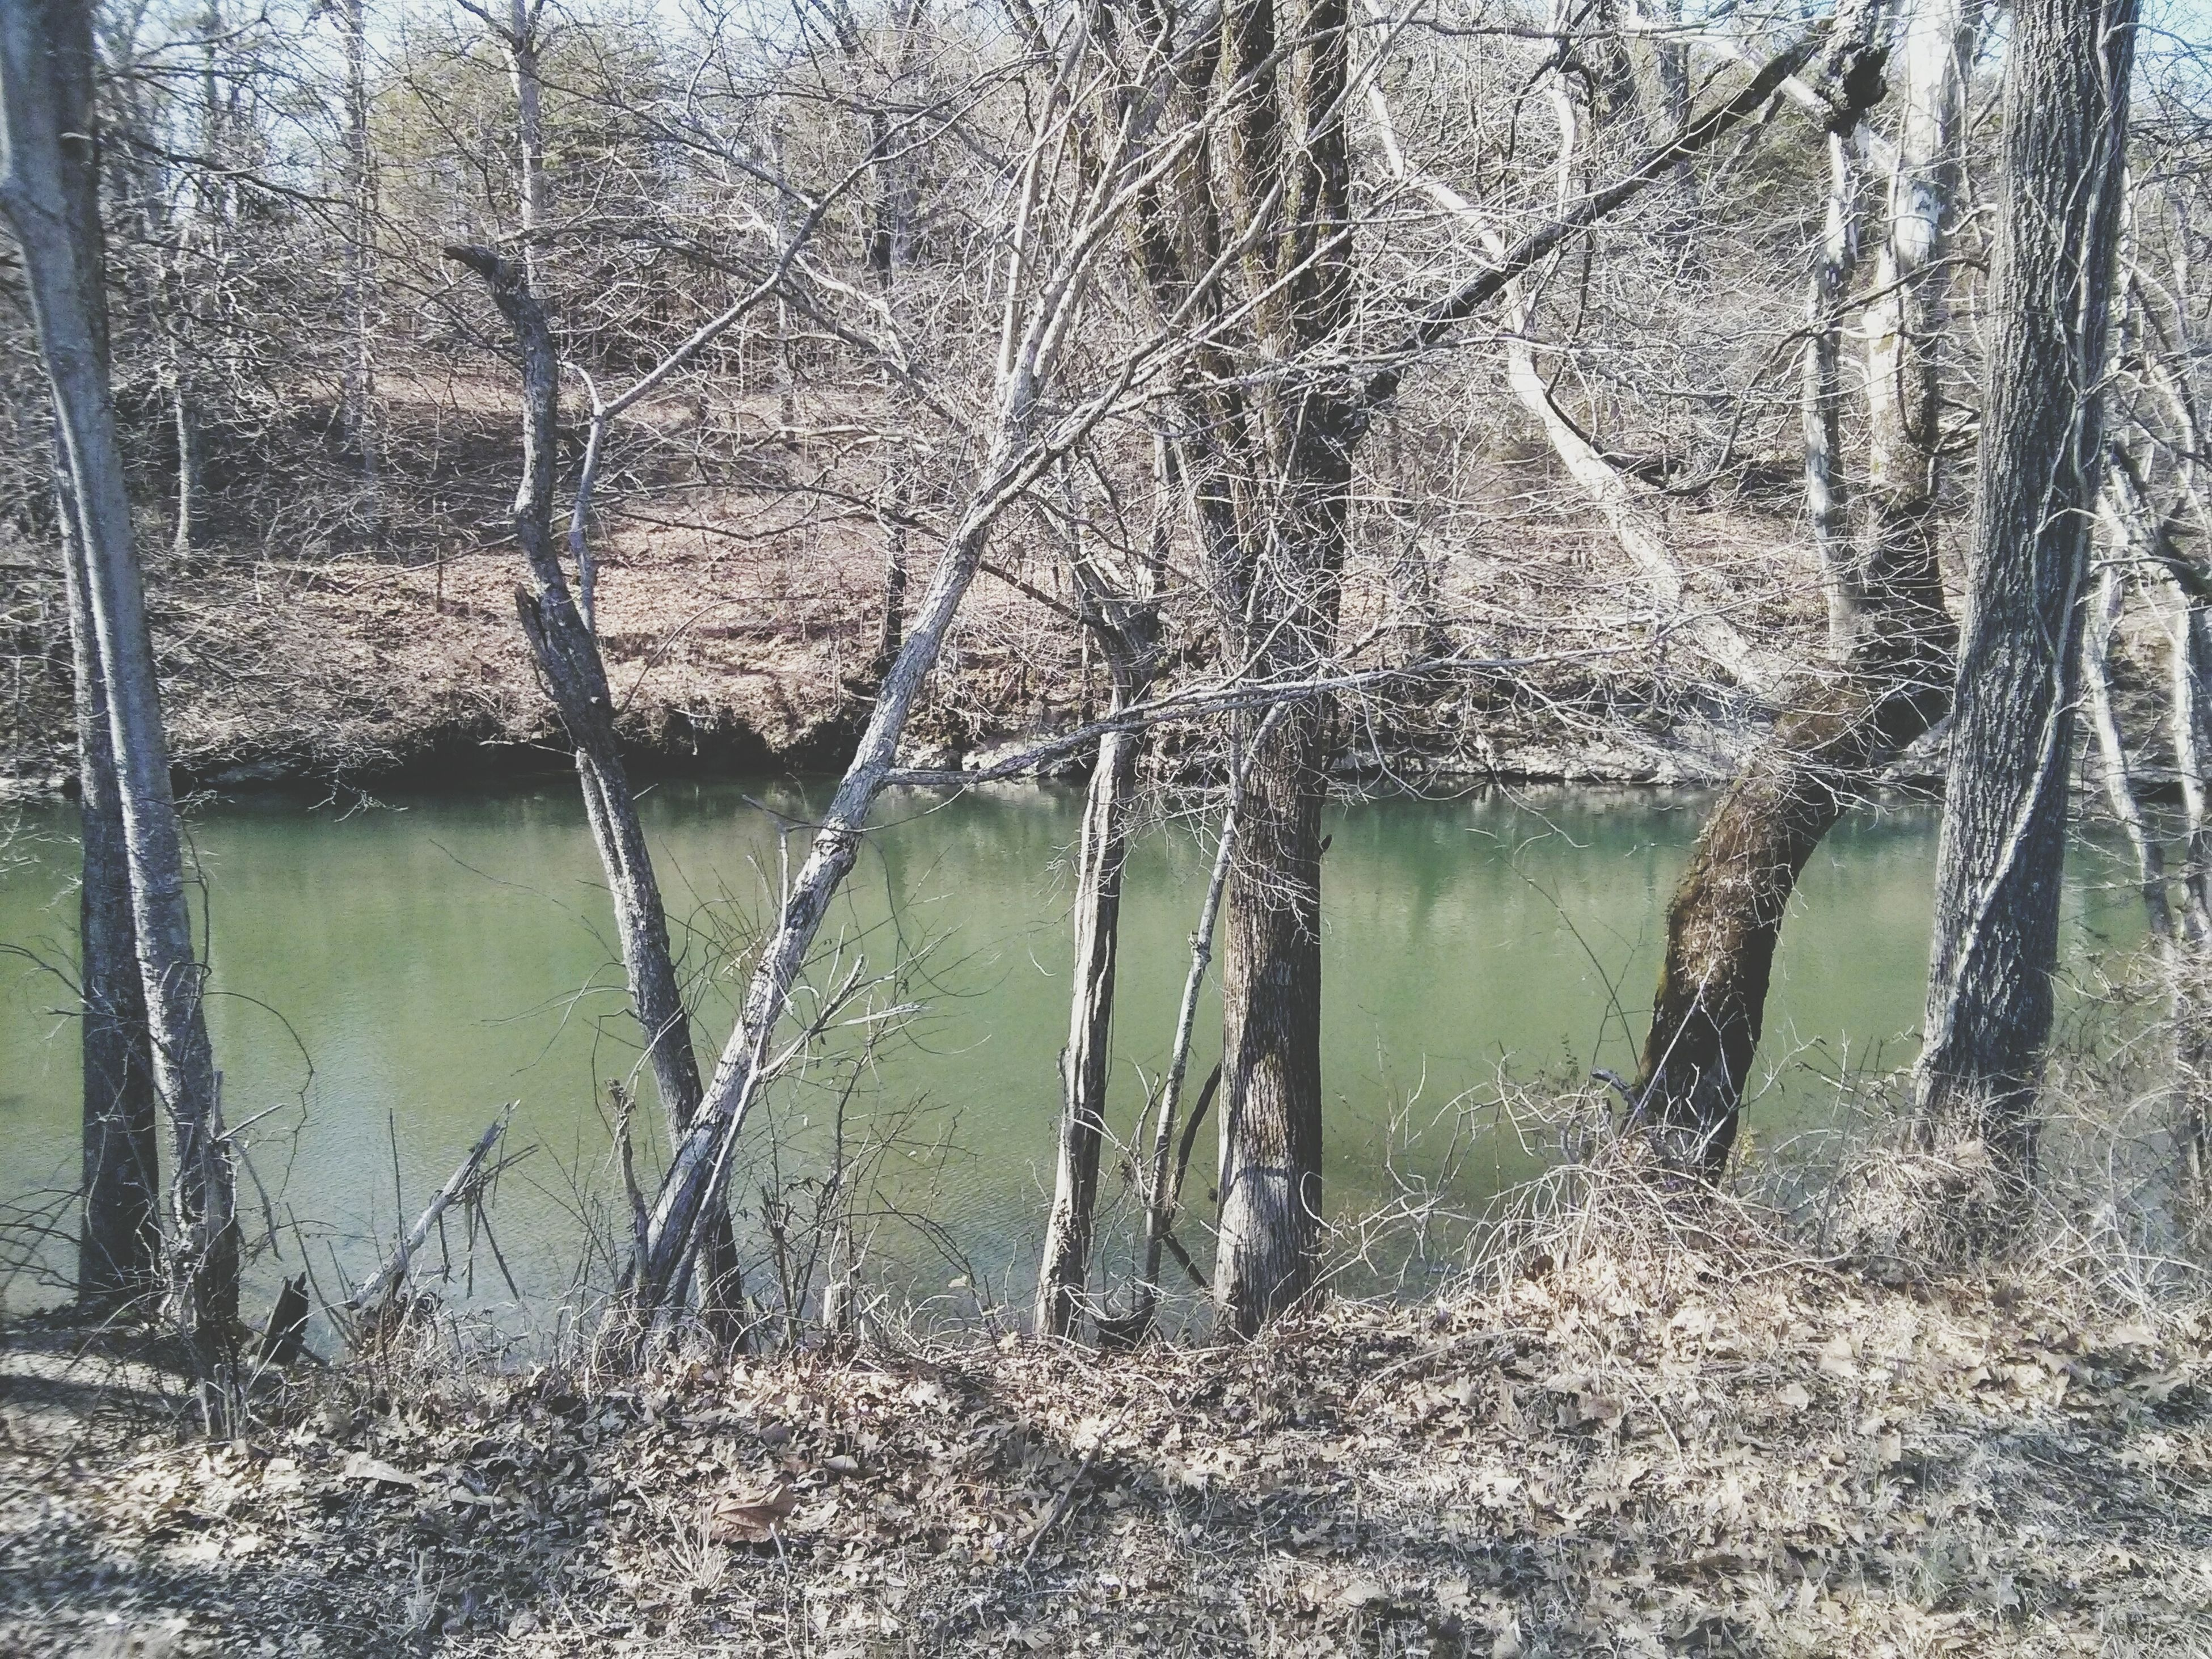 water, branch, tree, bare tree, tranquility, nature, lake, beauty in nature, growth, tranquil scene, tree trunk, reflection, plant, scenics, day, outdoors, river, no people, non-urban scene, idyllic